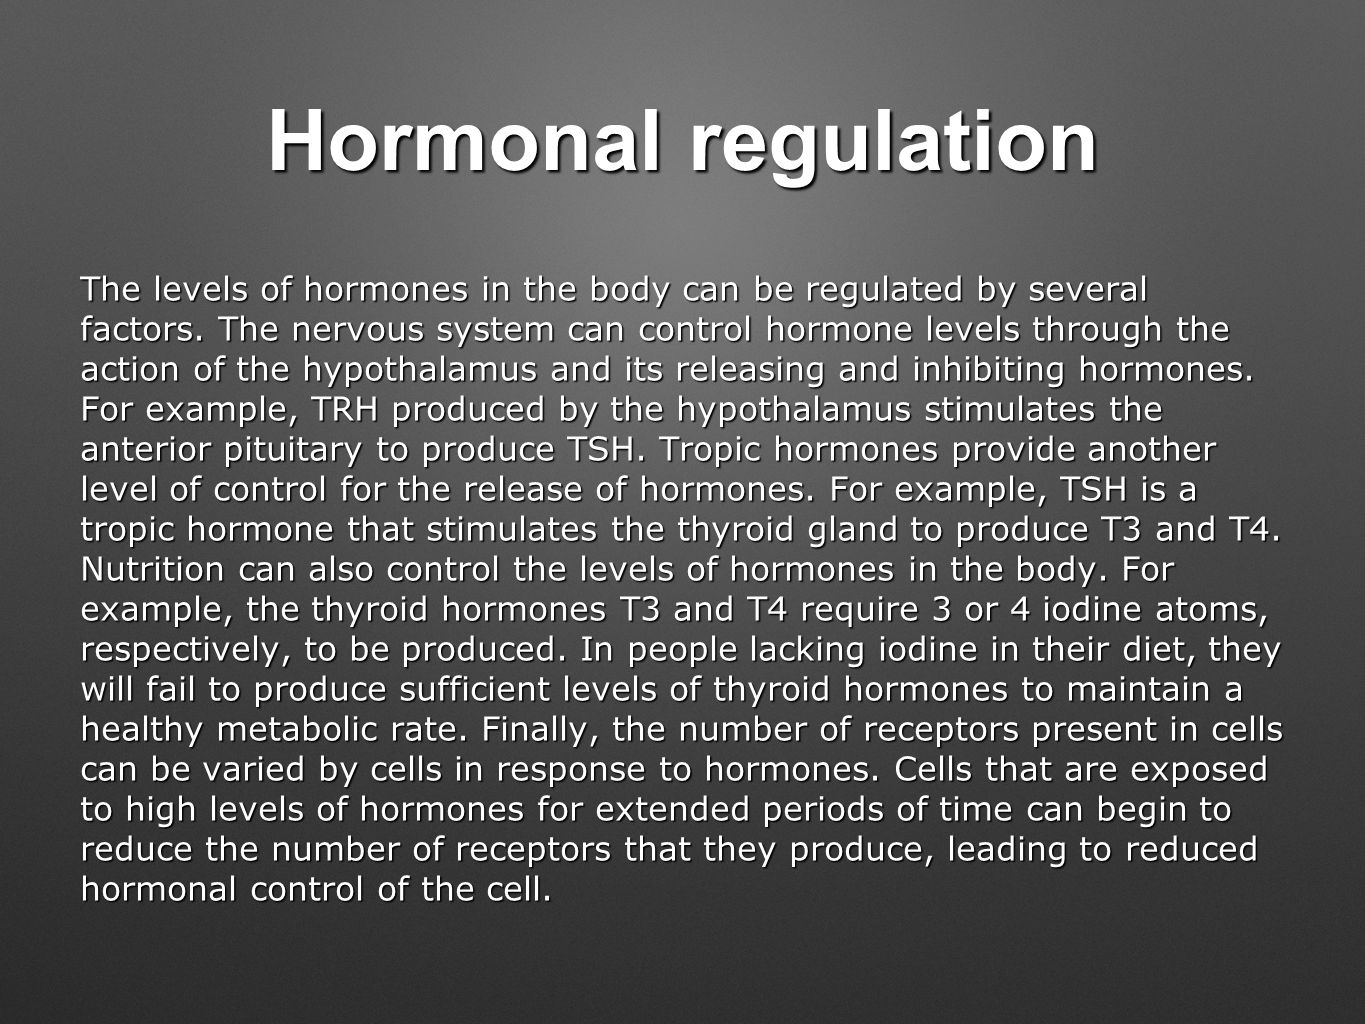 Hormonal regulation The levels of hormones in the body can be regulated by several factors.